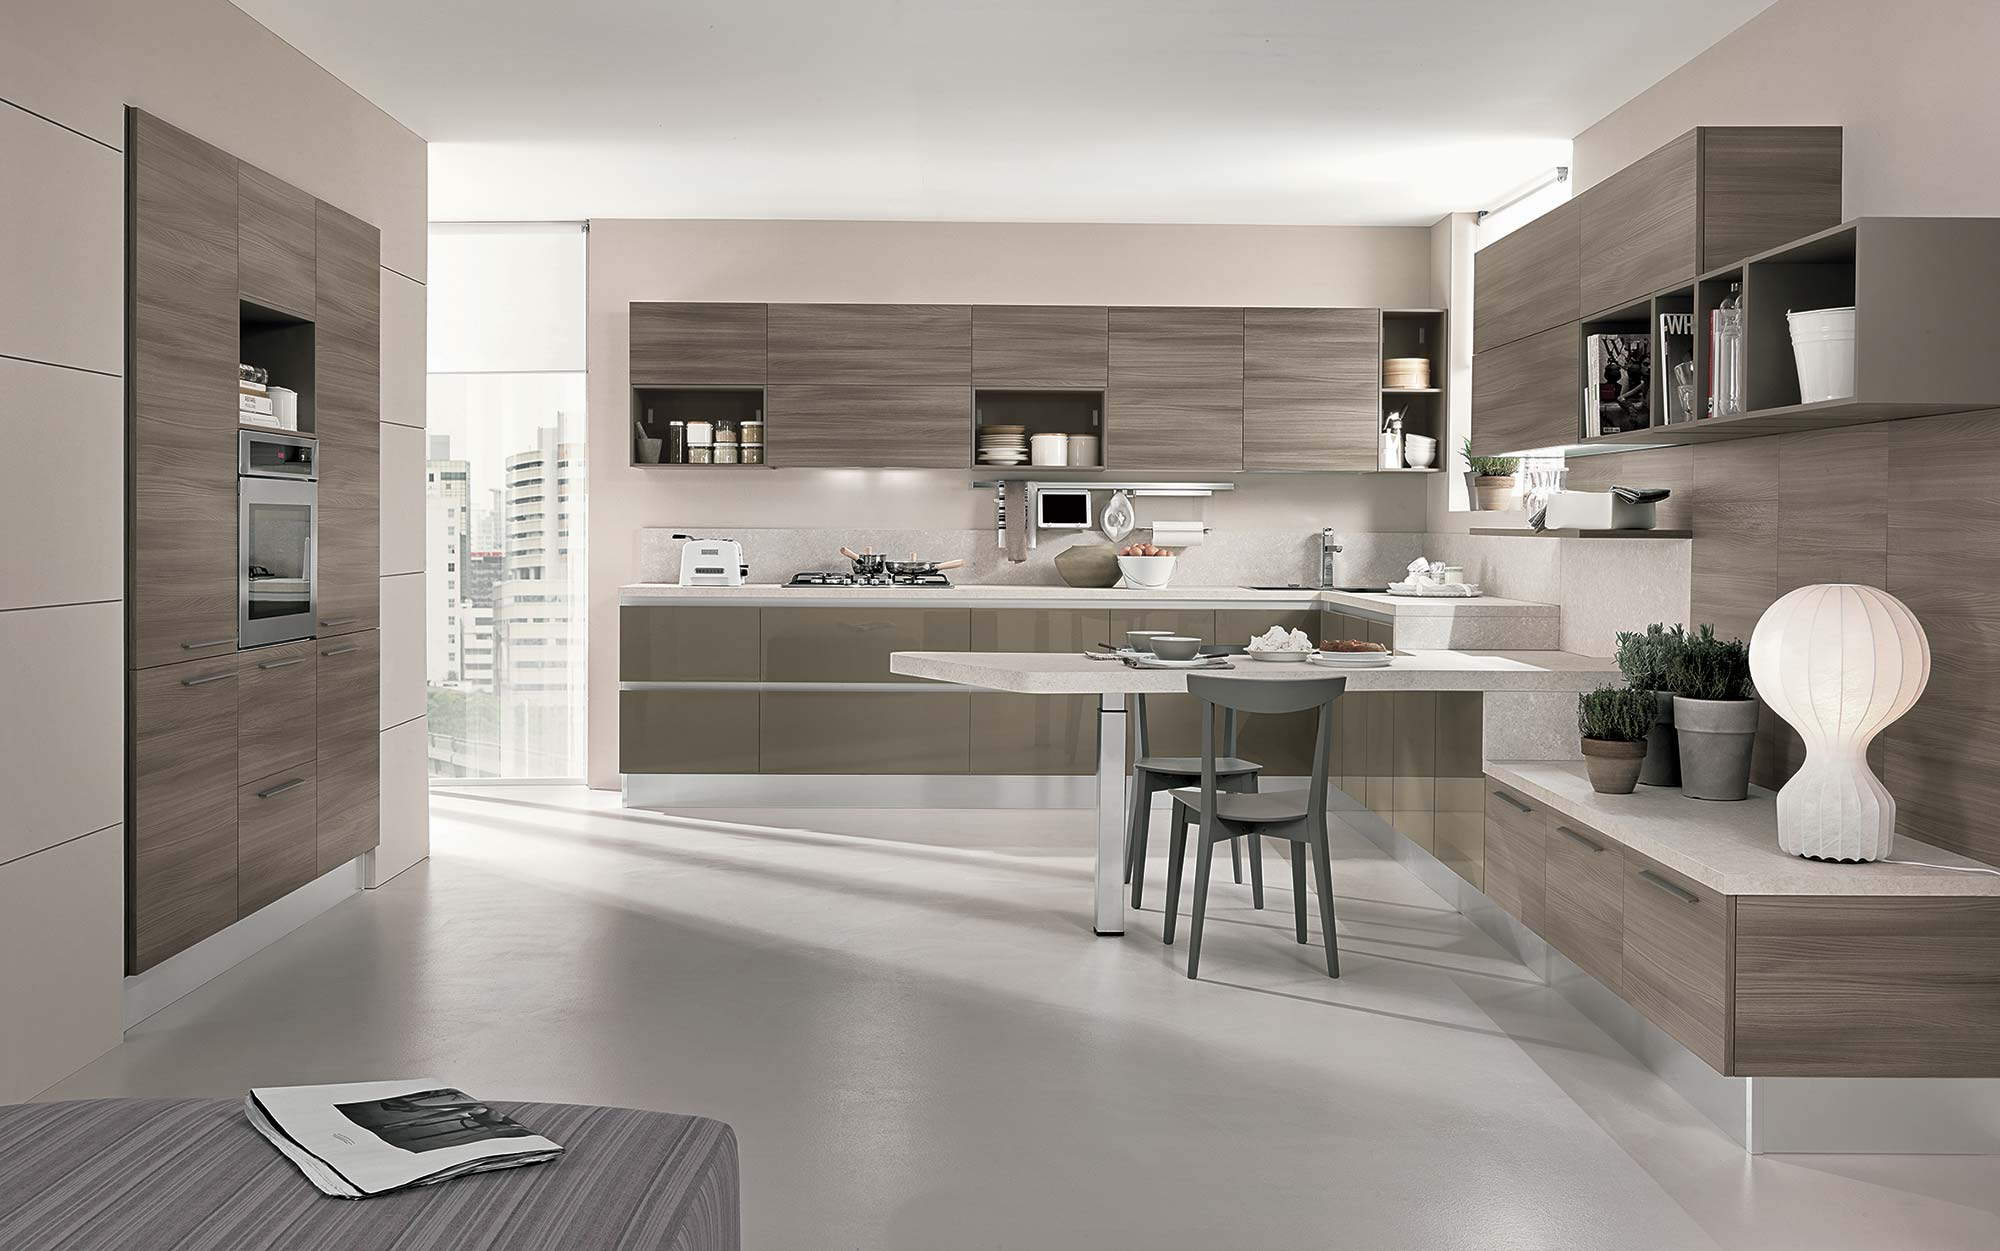 Febal Cucine Moderne. Interesting Febal Cucine Moderne With Febal ...